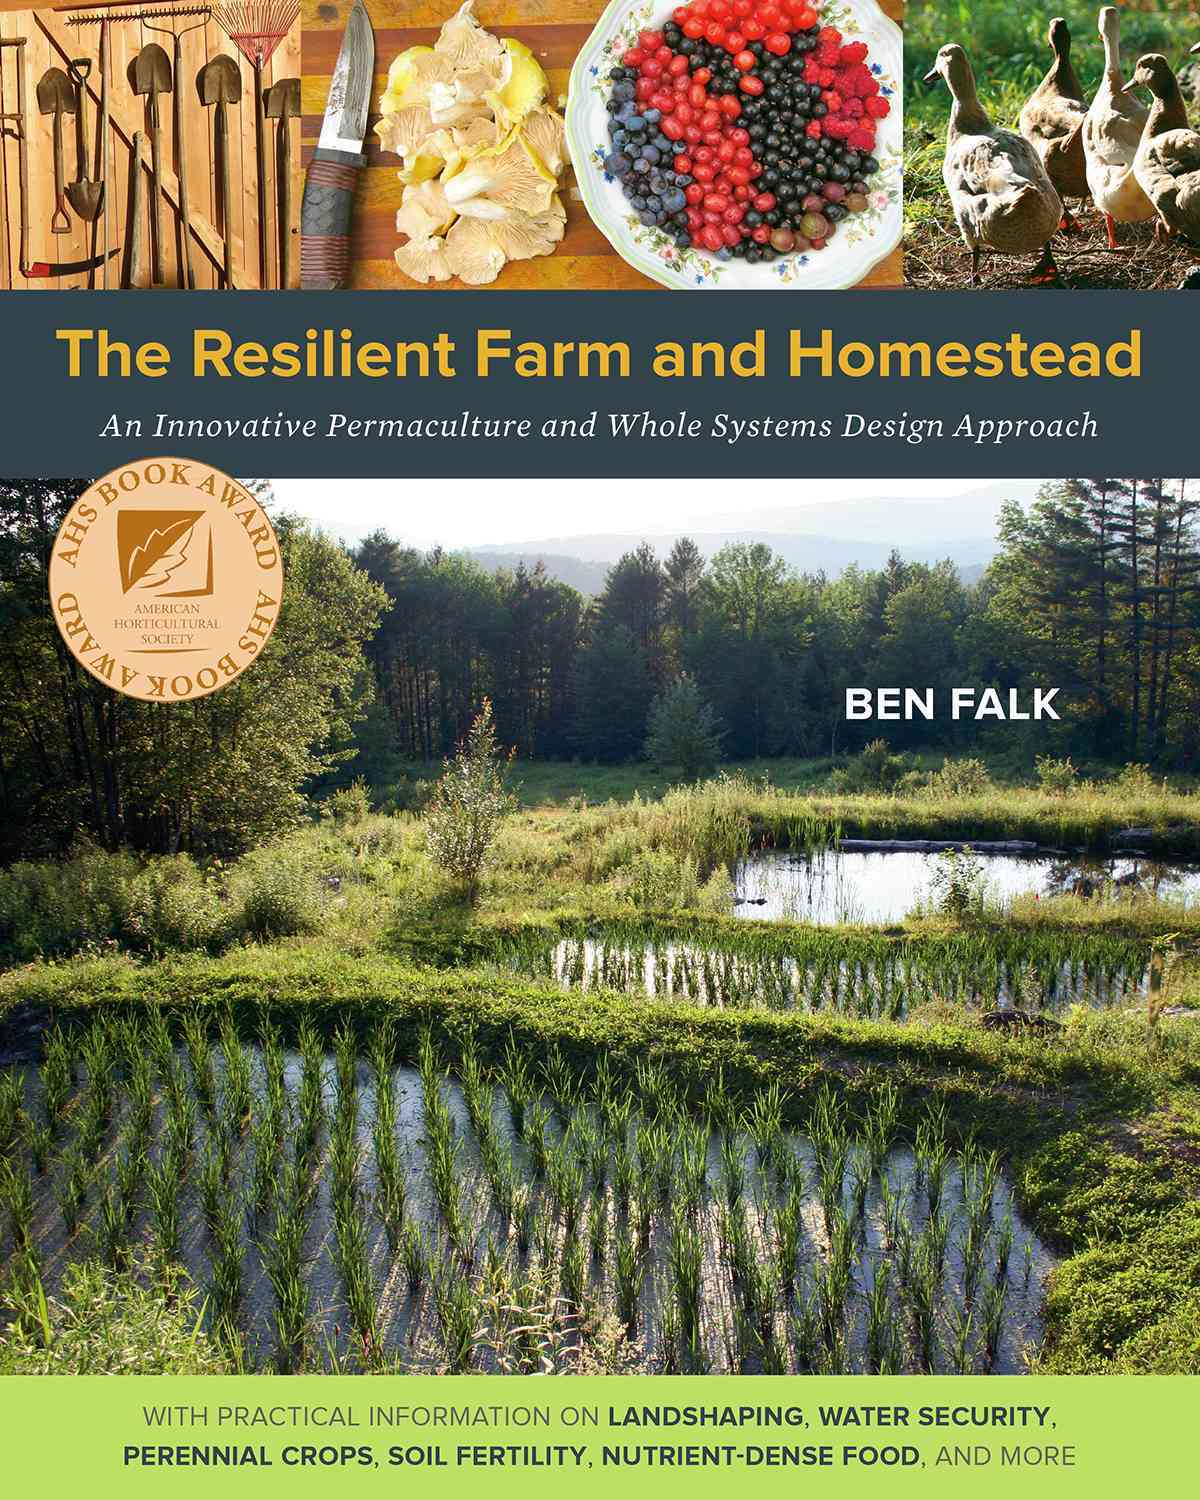 The Resilient Farm and Homestead: An Innovative Permaculture and Whole Systems Design Approach (Paperback)